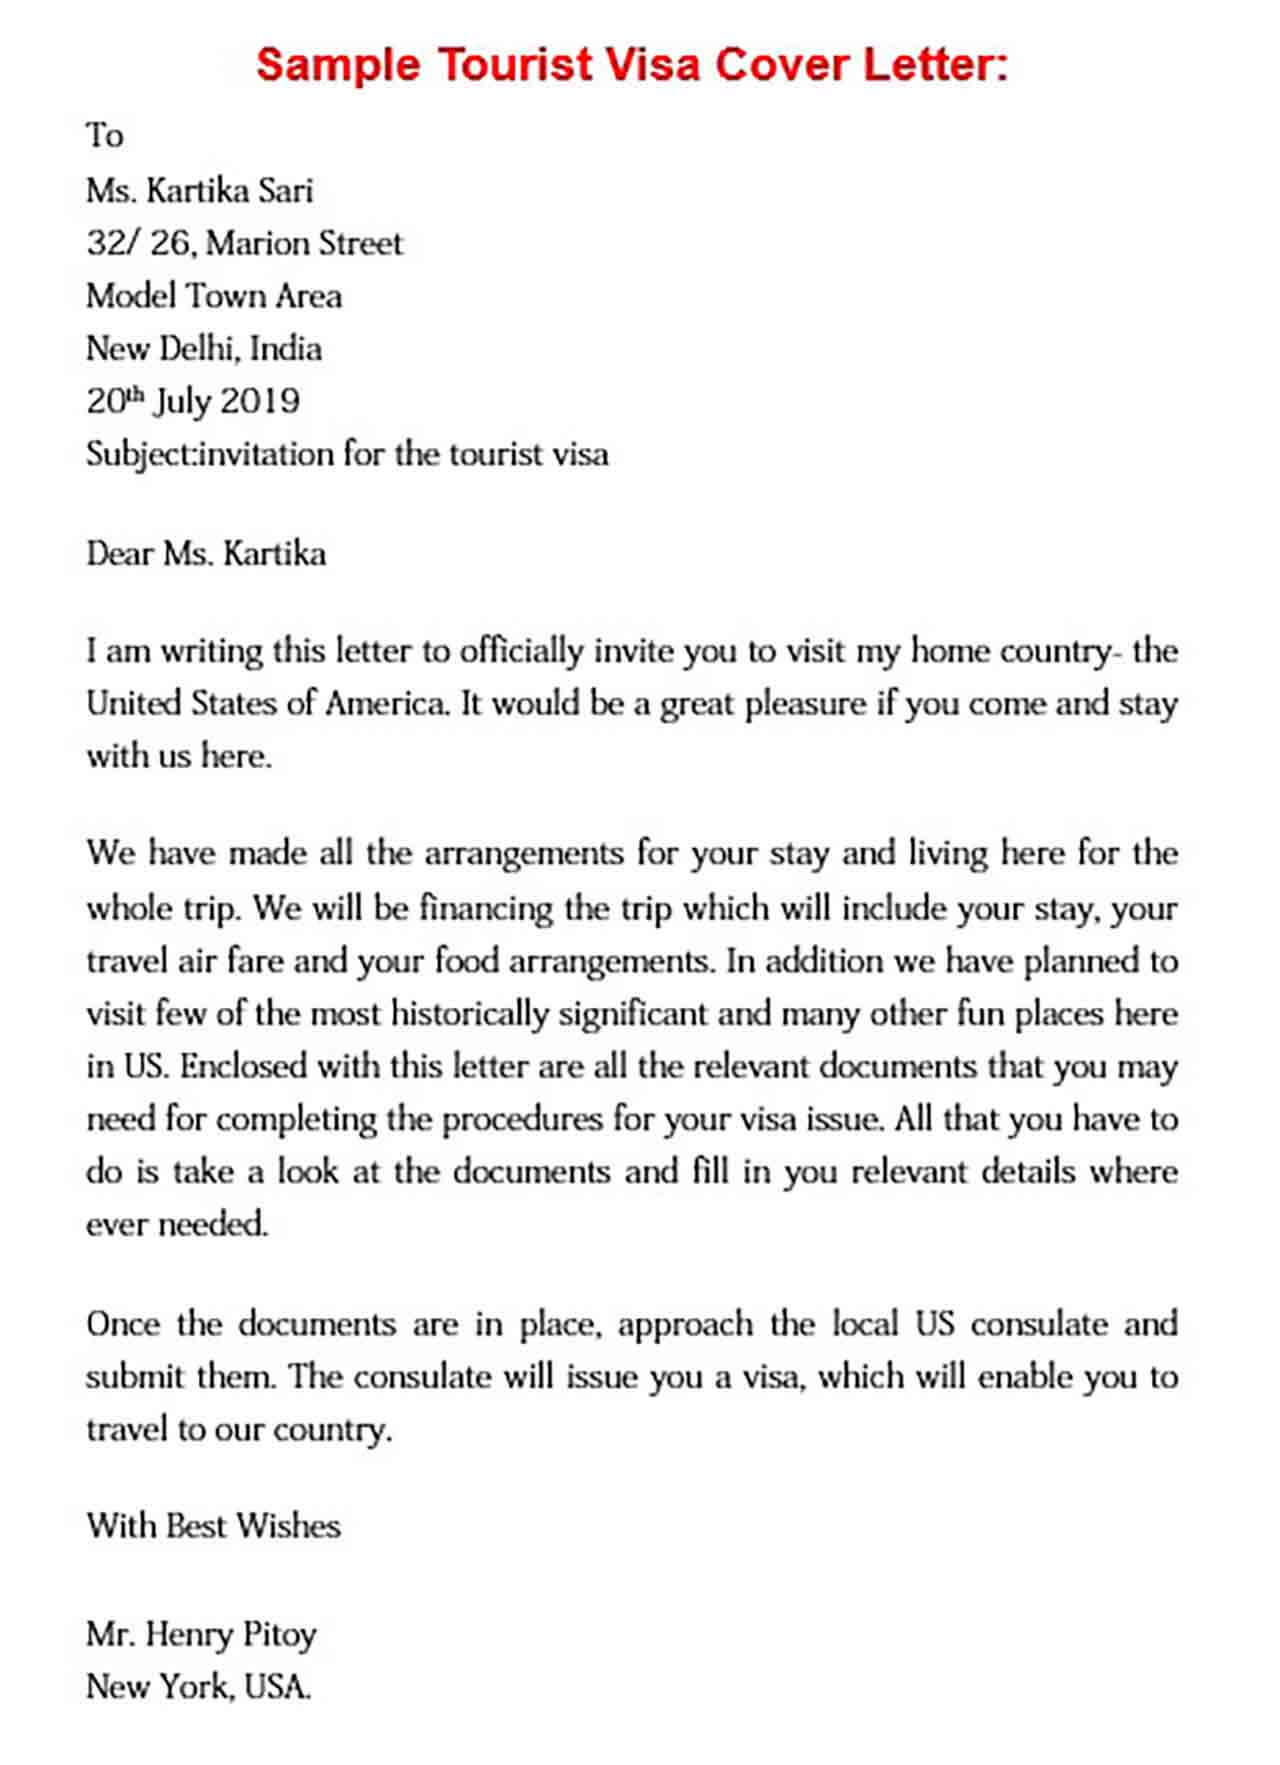 sample tourist visa cover letter